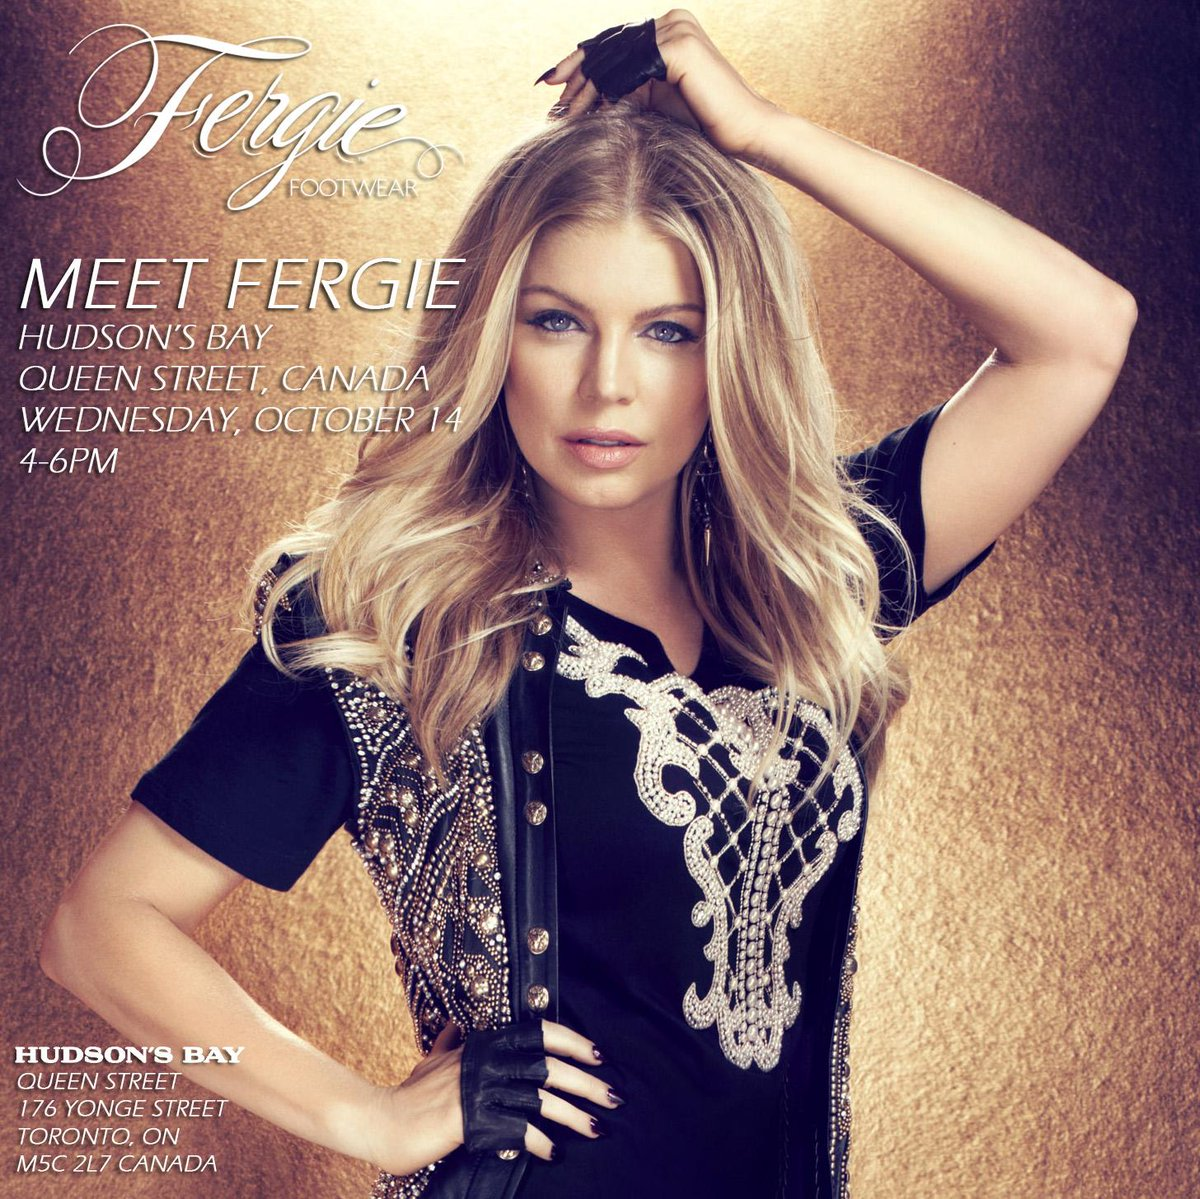 RT @FergieFootwear: 10/14 Meet @Fergie 4-6pm at @HudsonsBay #QueenStreet!W/ yr purchase u'll get 2 meet #Fergie & receive a signed photo. h…